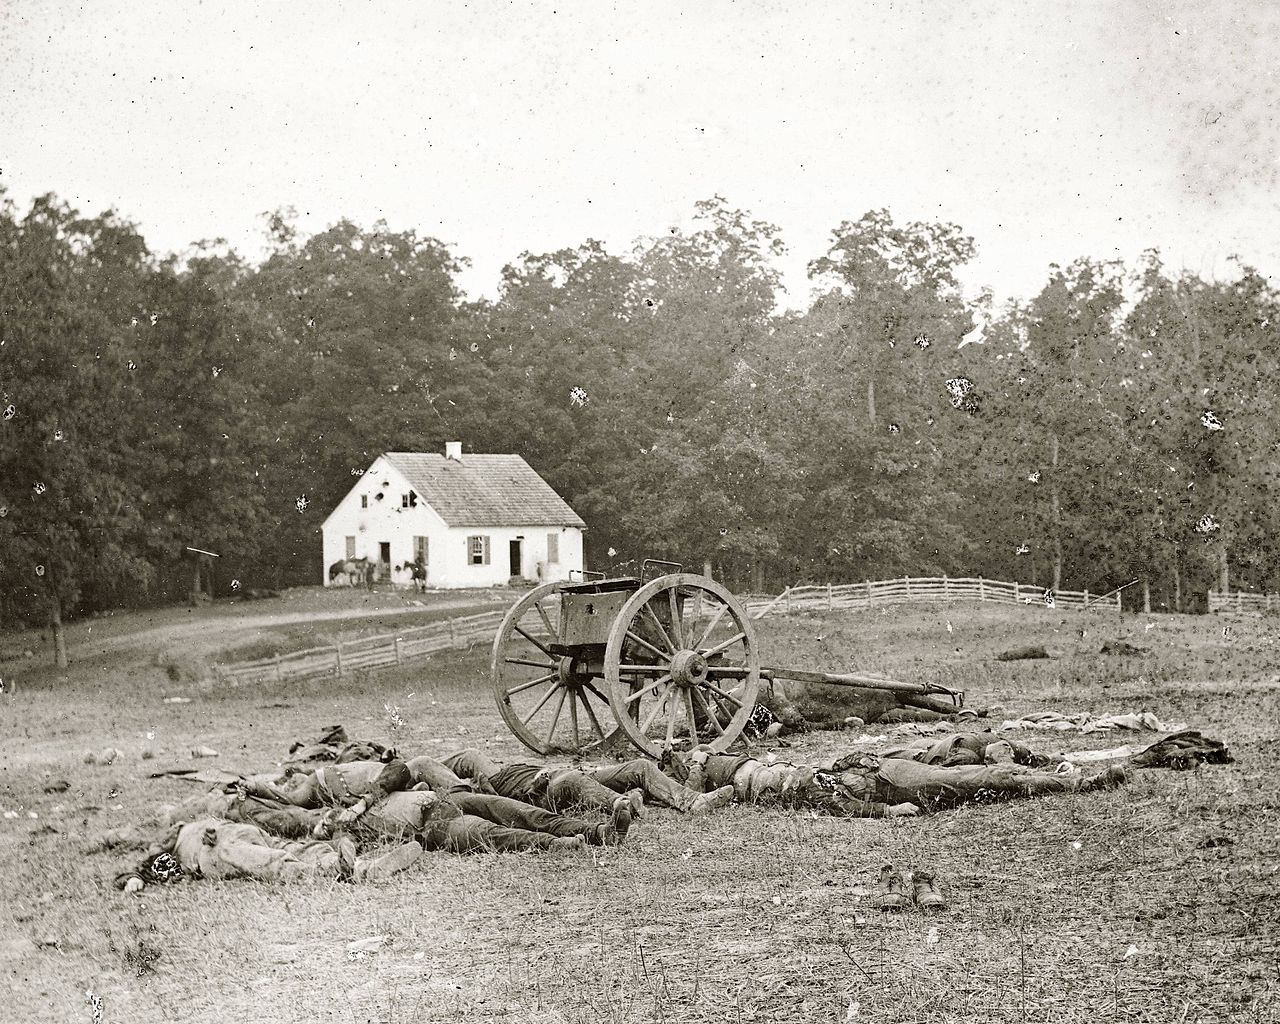 Dead by the Dunkard Church, September 1862, by Alexander Gardner.